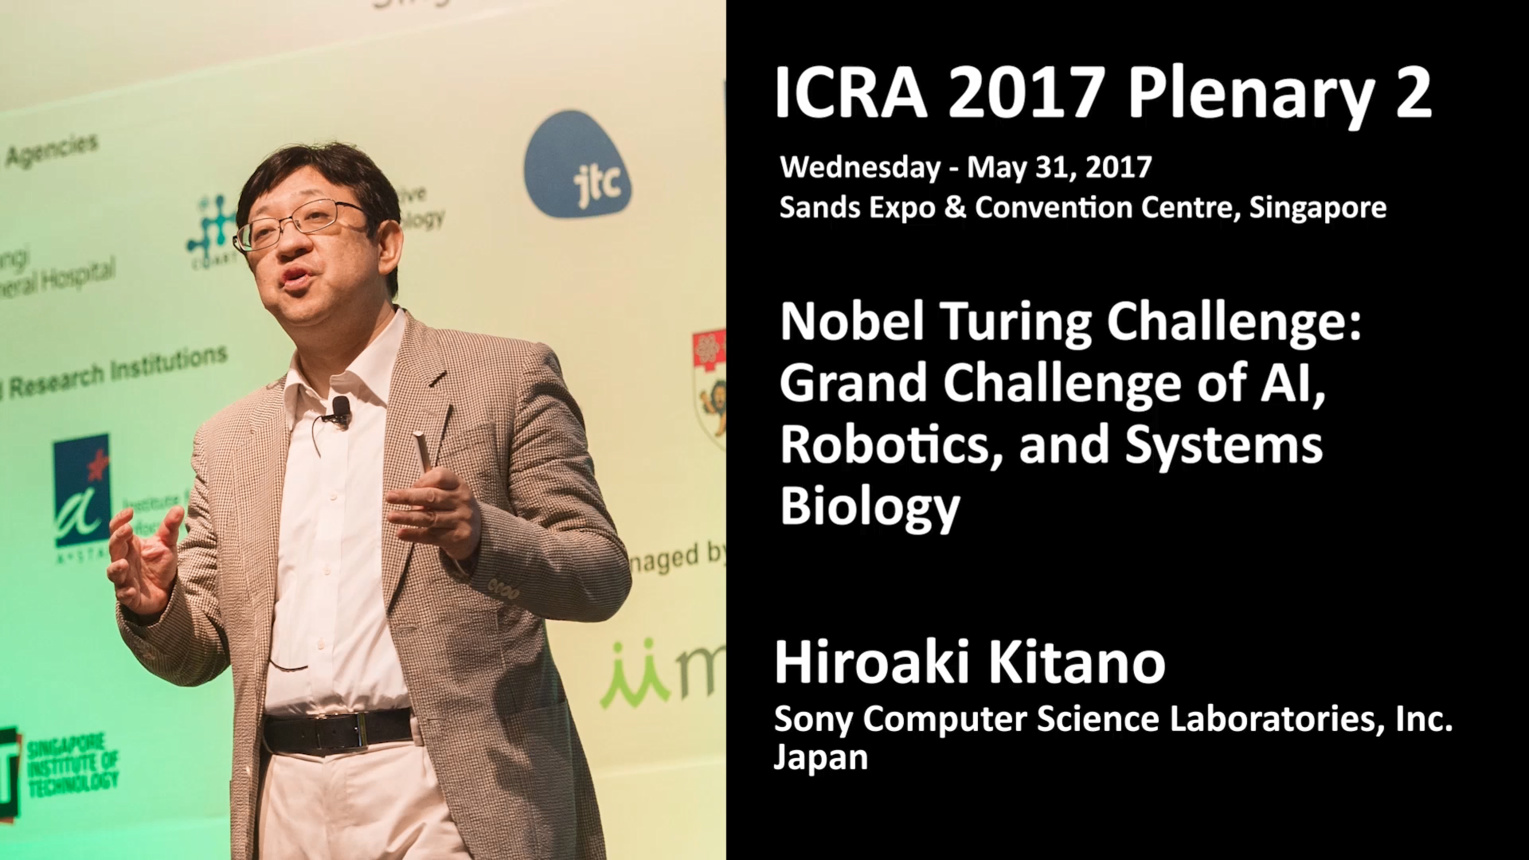 Nobel Turing Challenge: Grand Challenge of AI, Robotics, and Systems Biology​